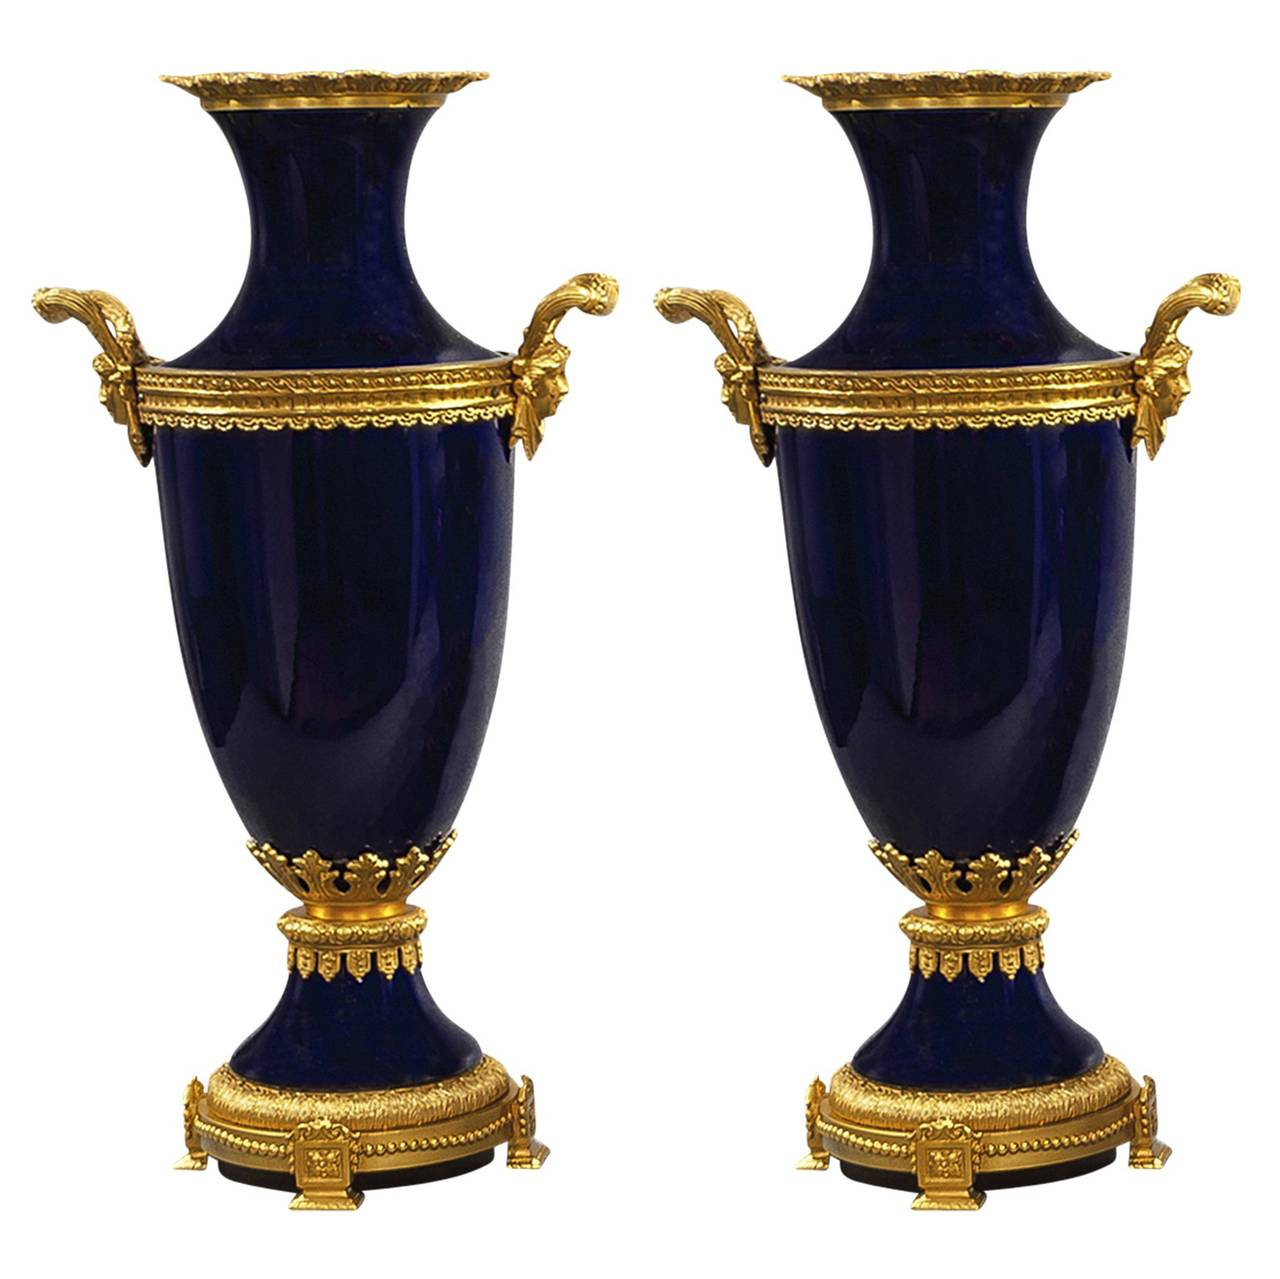 Three piece cobalt blue porcelain and bronze vase